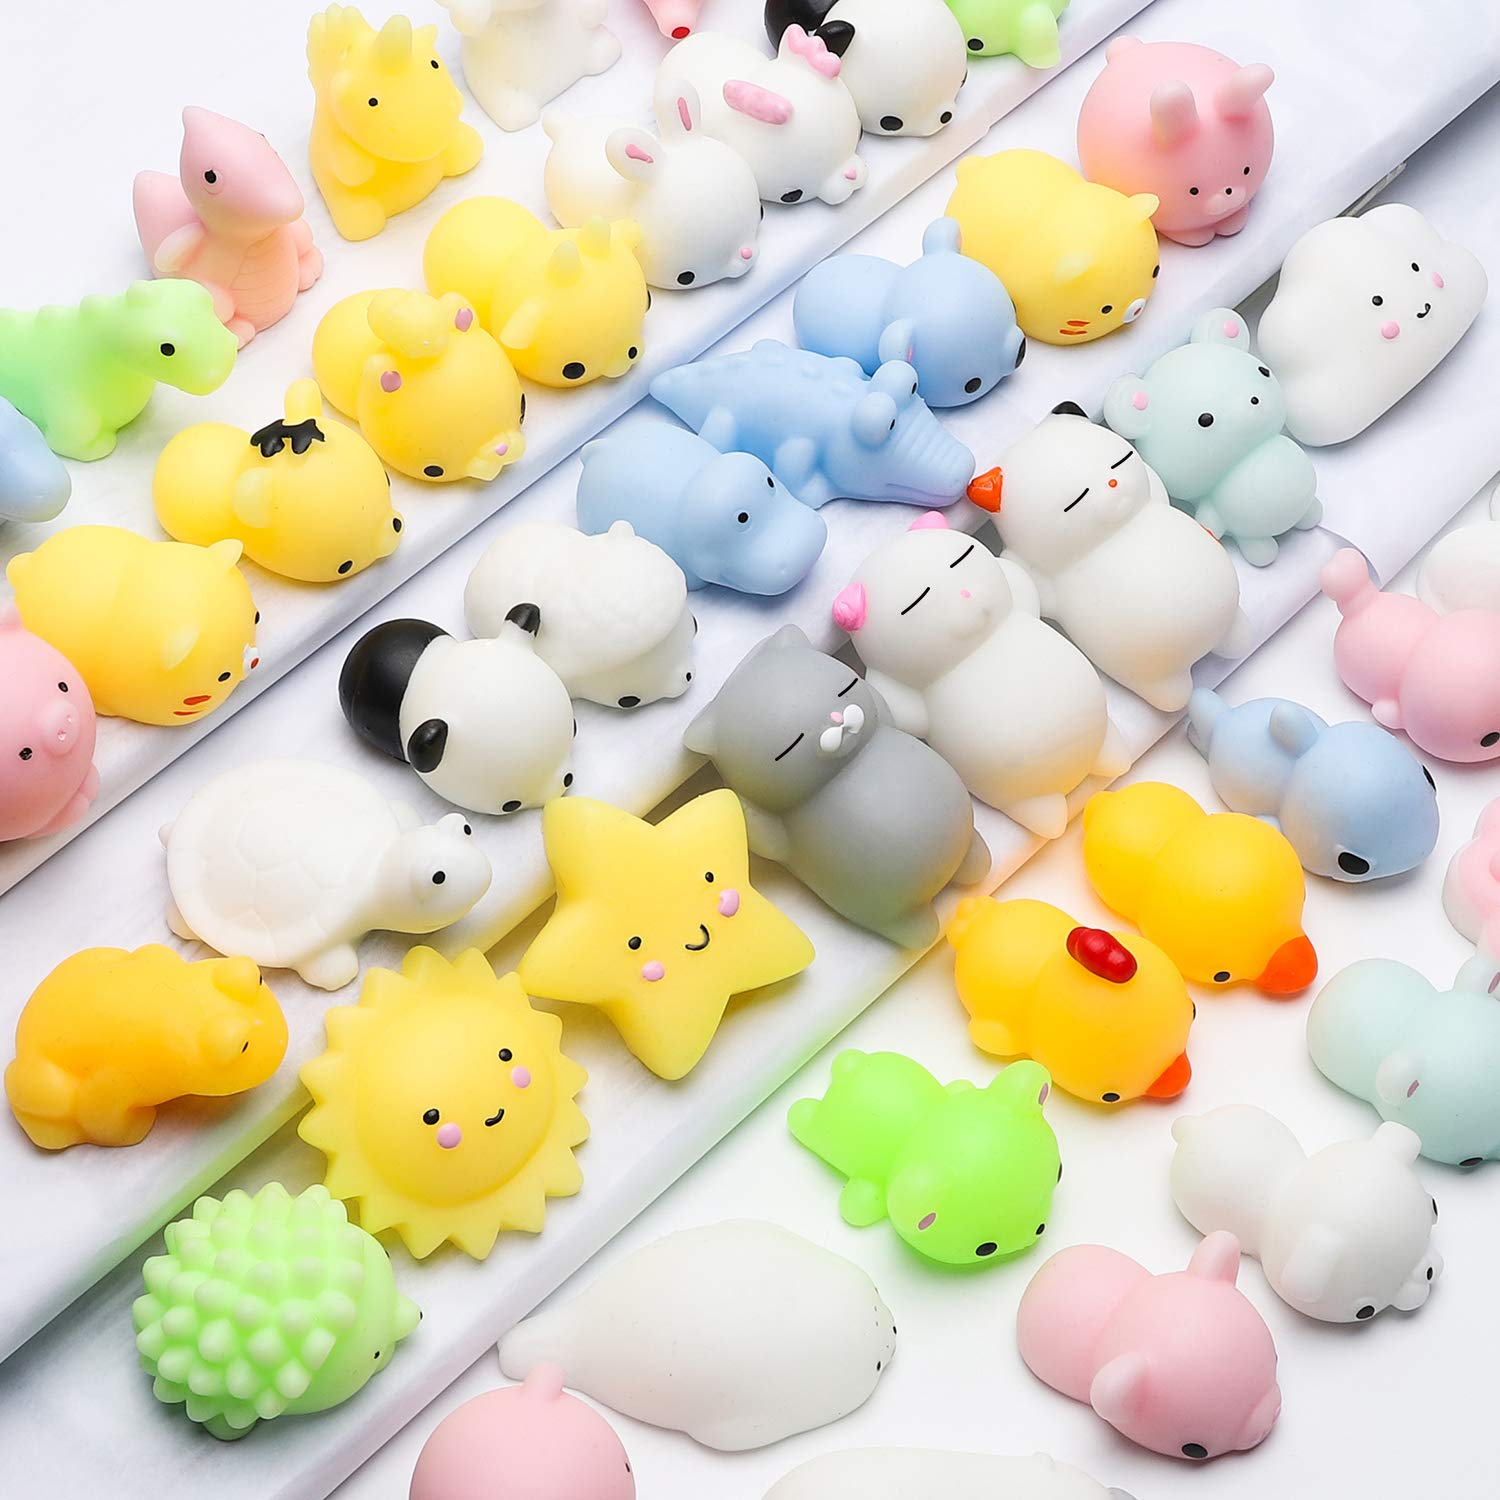 WATINC Random 70 Pcs Squishies, Birthday Gifts for Kids Party Favors, 30 Pcs Kawaii Simulation Bread Squishies 40 Pcs Mochi Squishies Cat Panda Goodie Bags Egg Fillers, Keychain Phone Straps by WATINC (Image #1)